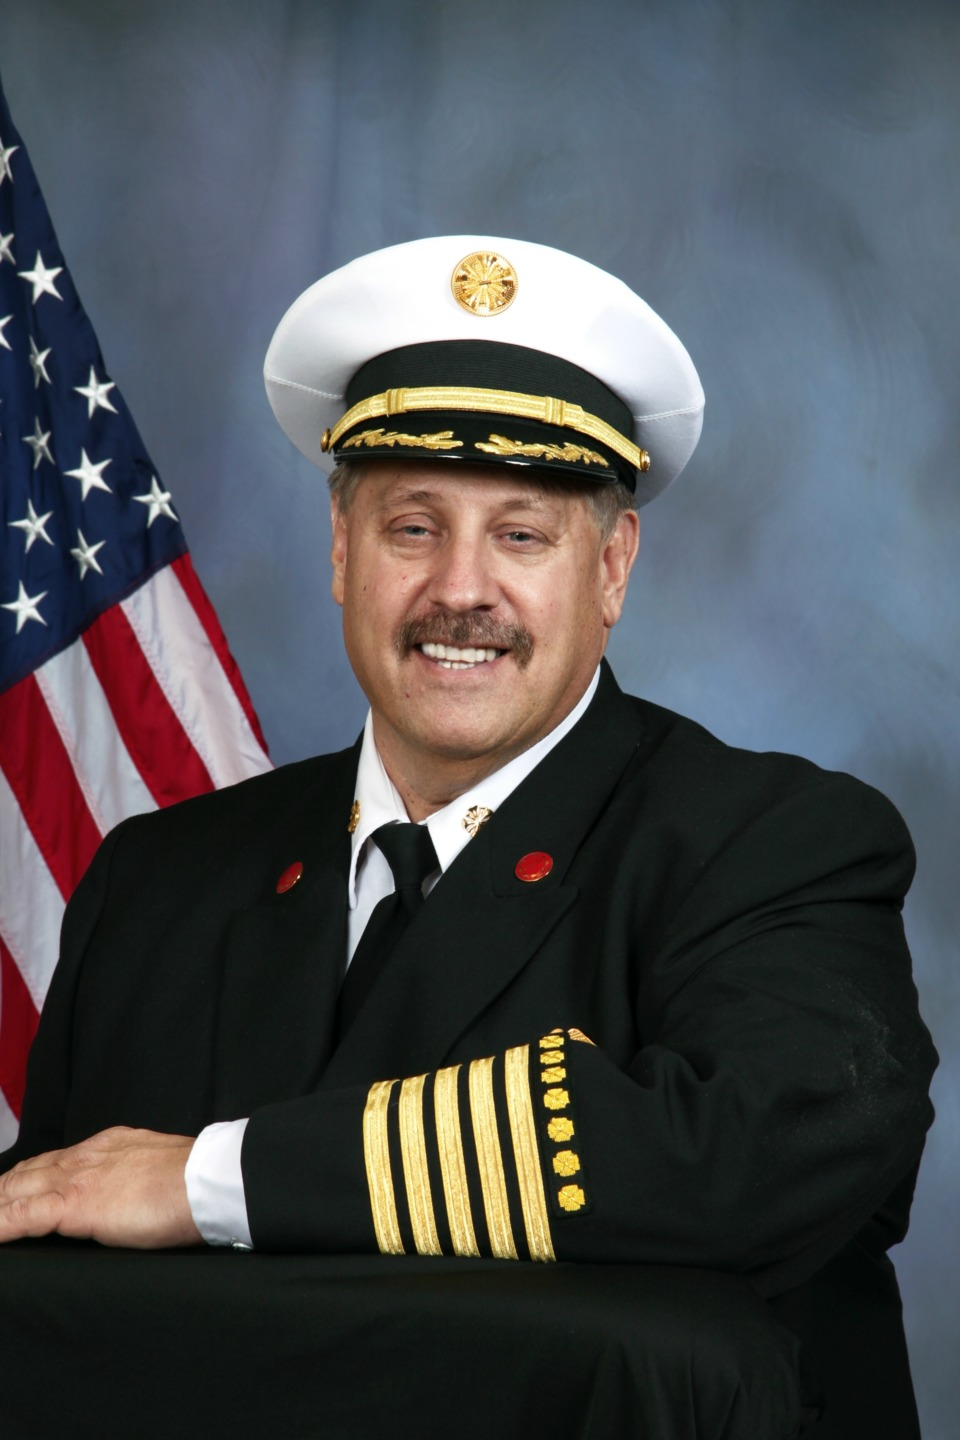 Do You Need A College Degrees To Be Paramedic Firehouse Gary Ludwig